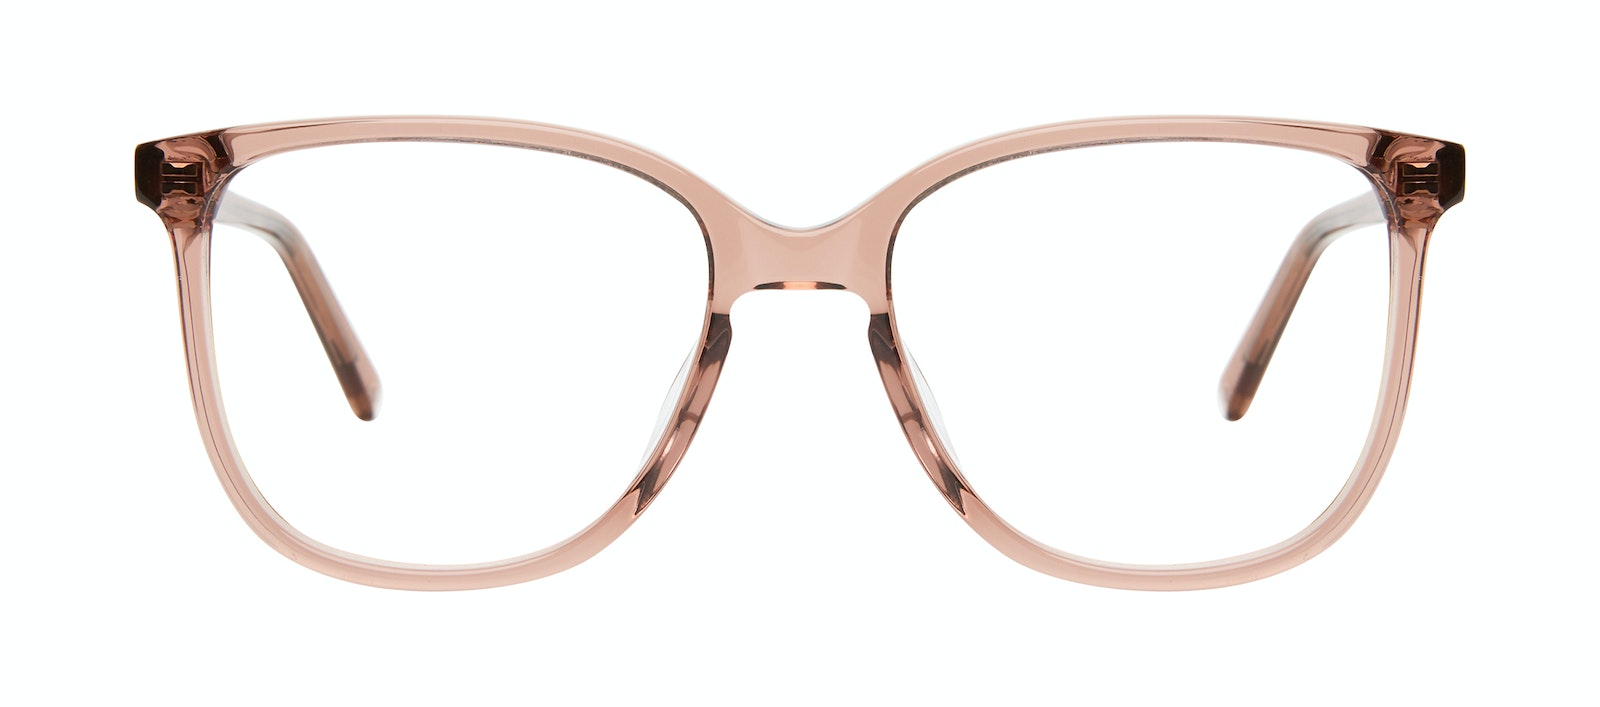 Affordable Fashion Glasses Square Eyeglasses Women Lead Rose Front